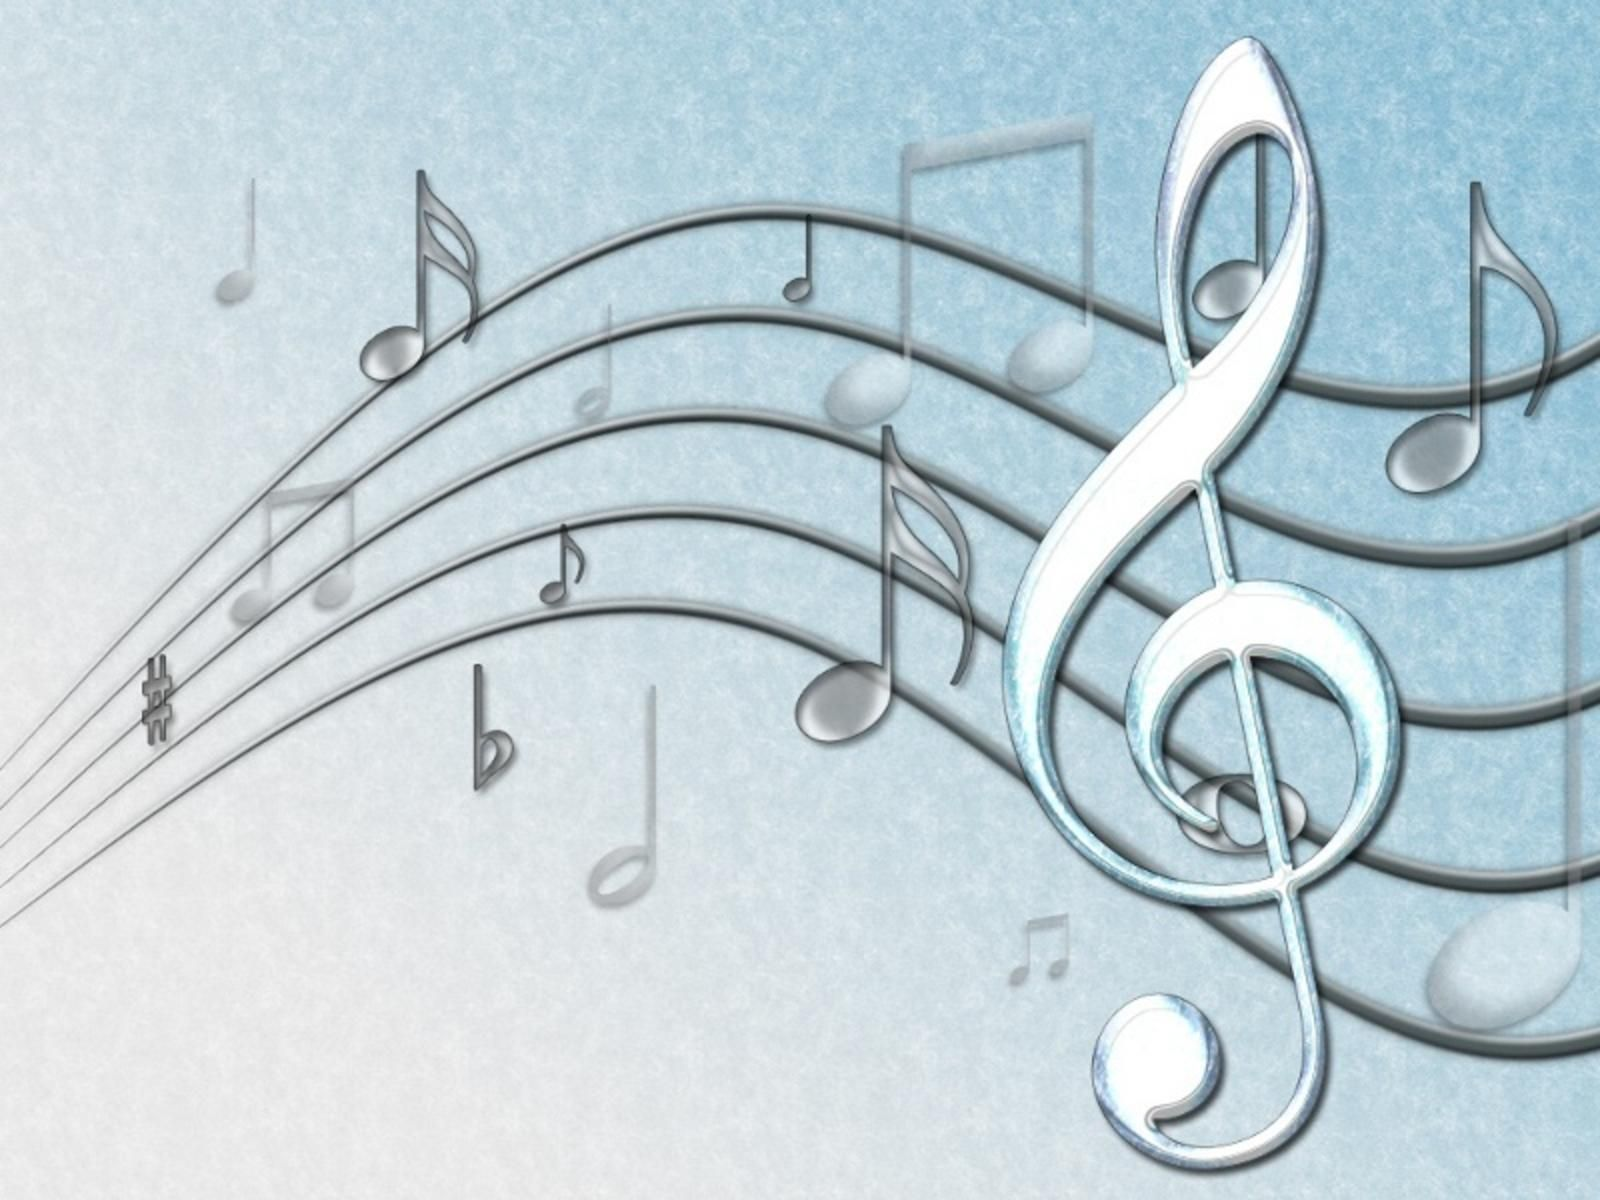 musical notes Computer Wallpapers, Desktop Backgrounds